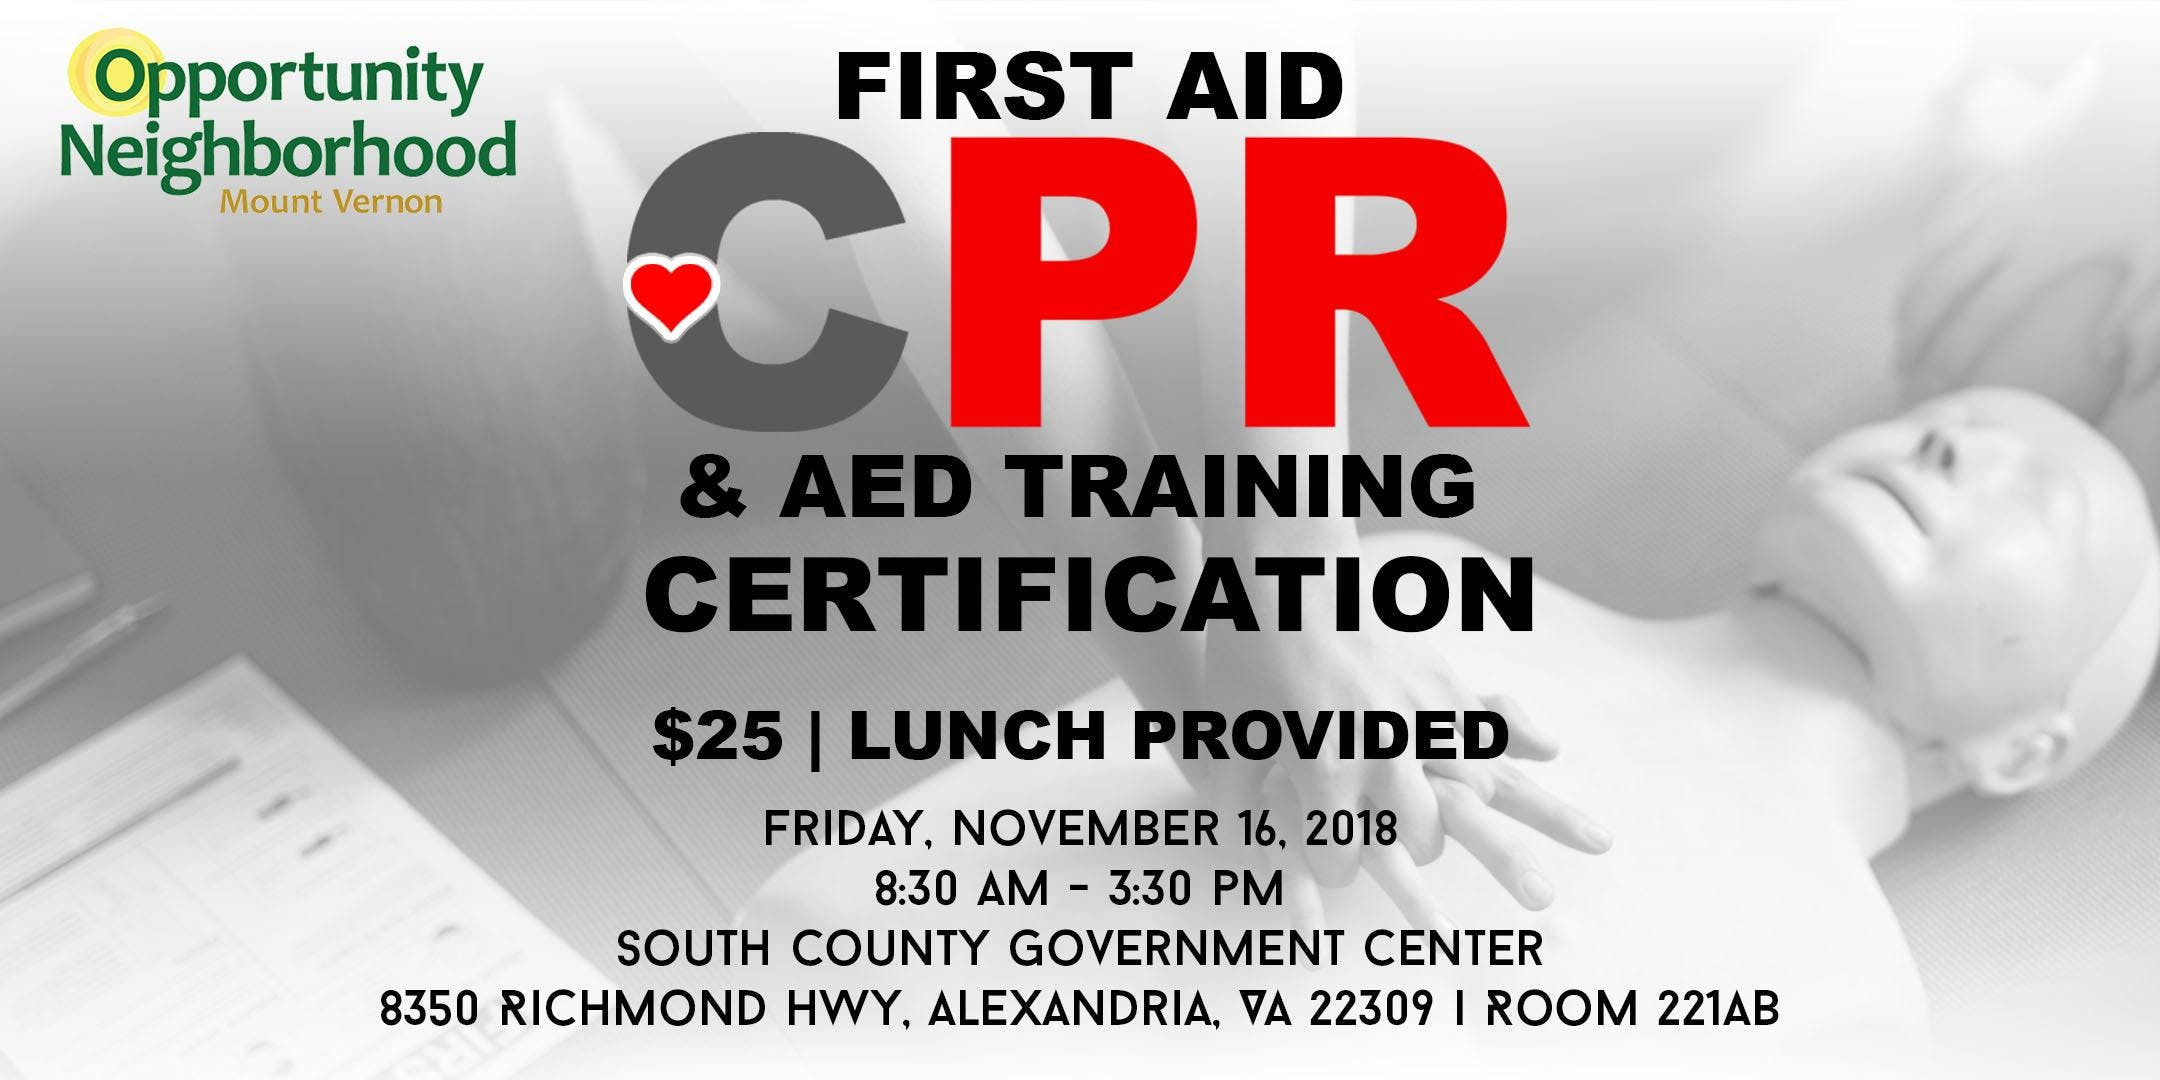 Opportunity Neighborhood Mount Vernon Cpr Certification At South